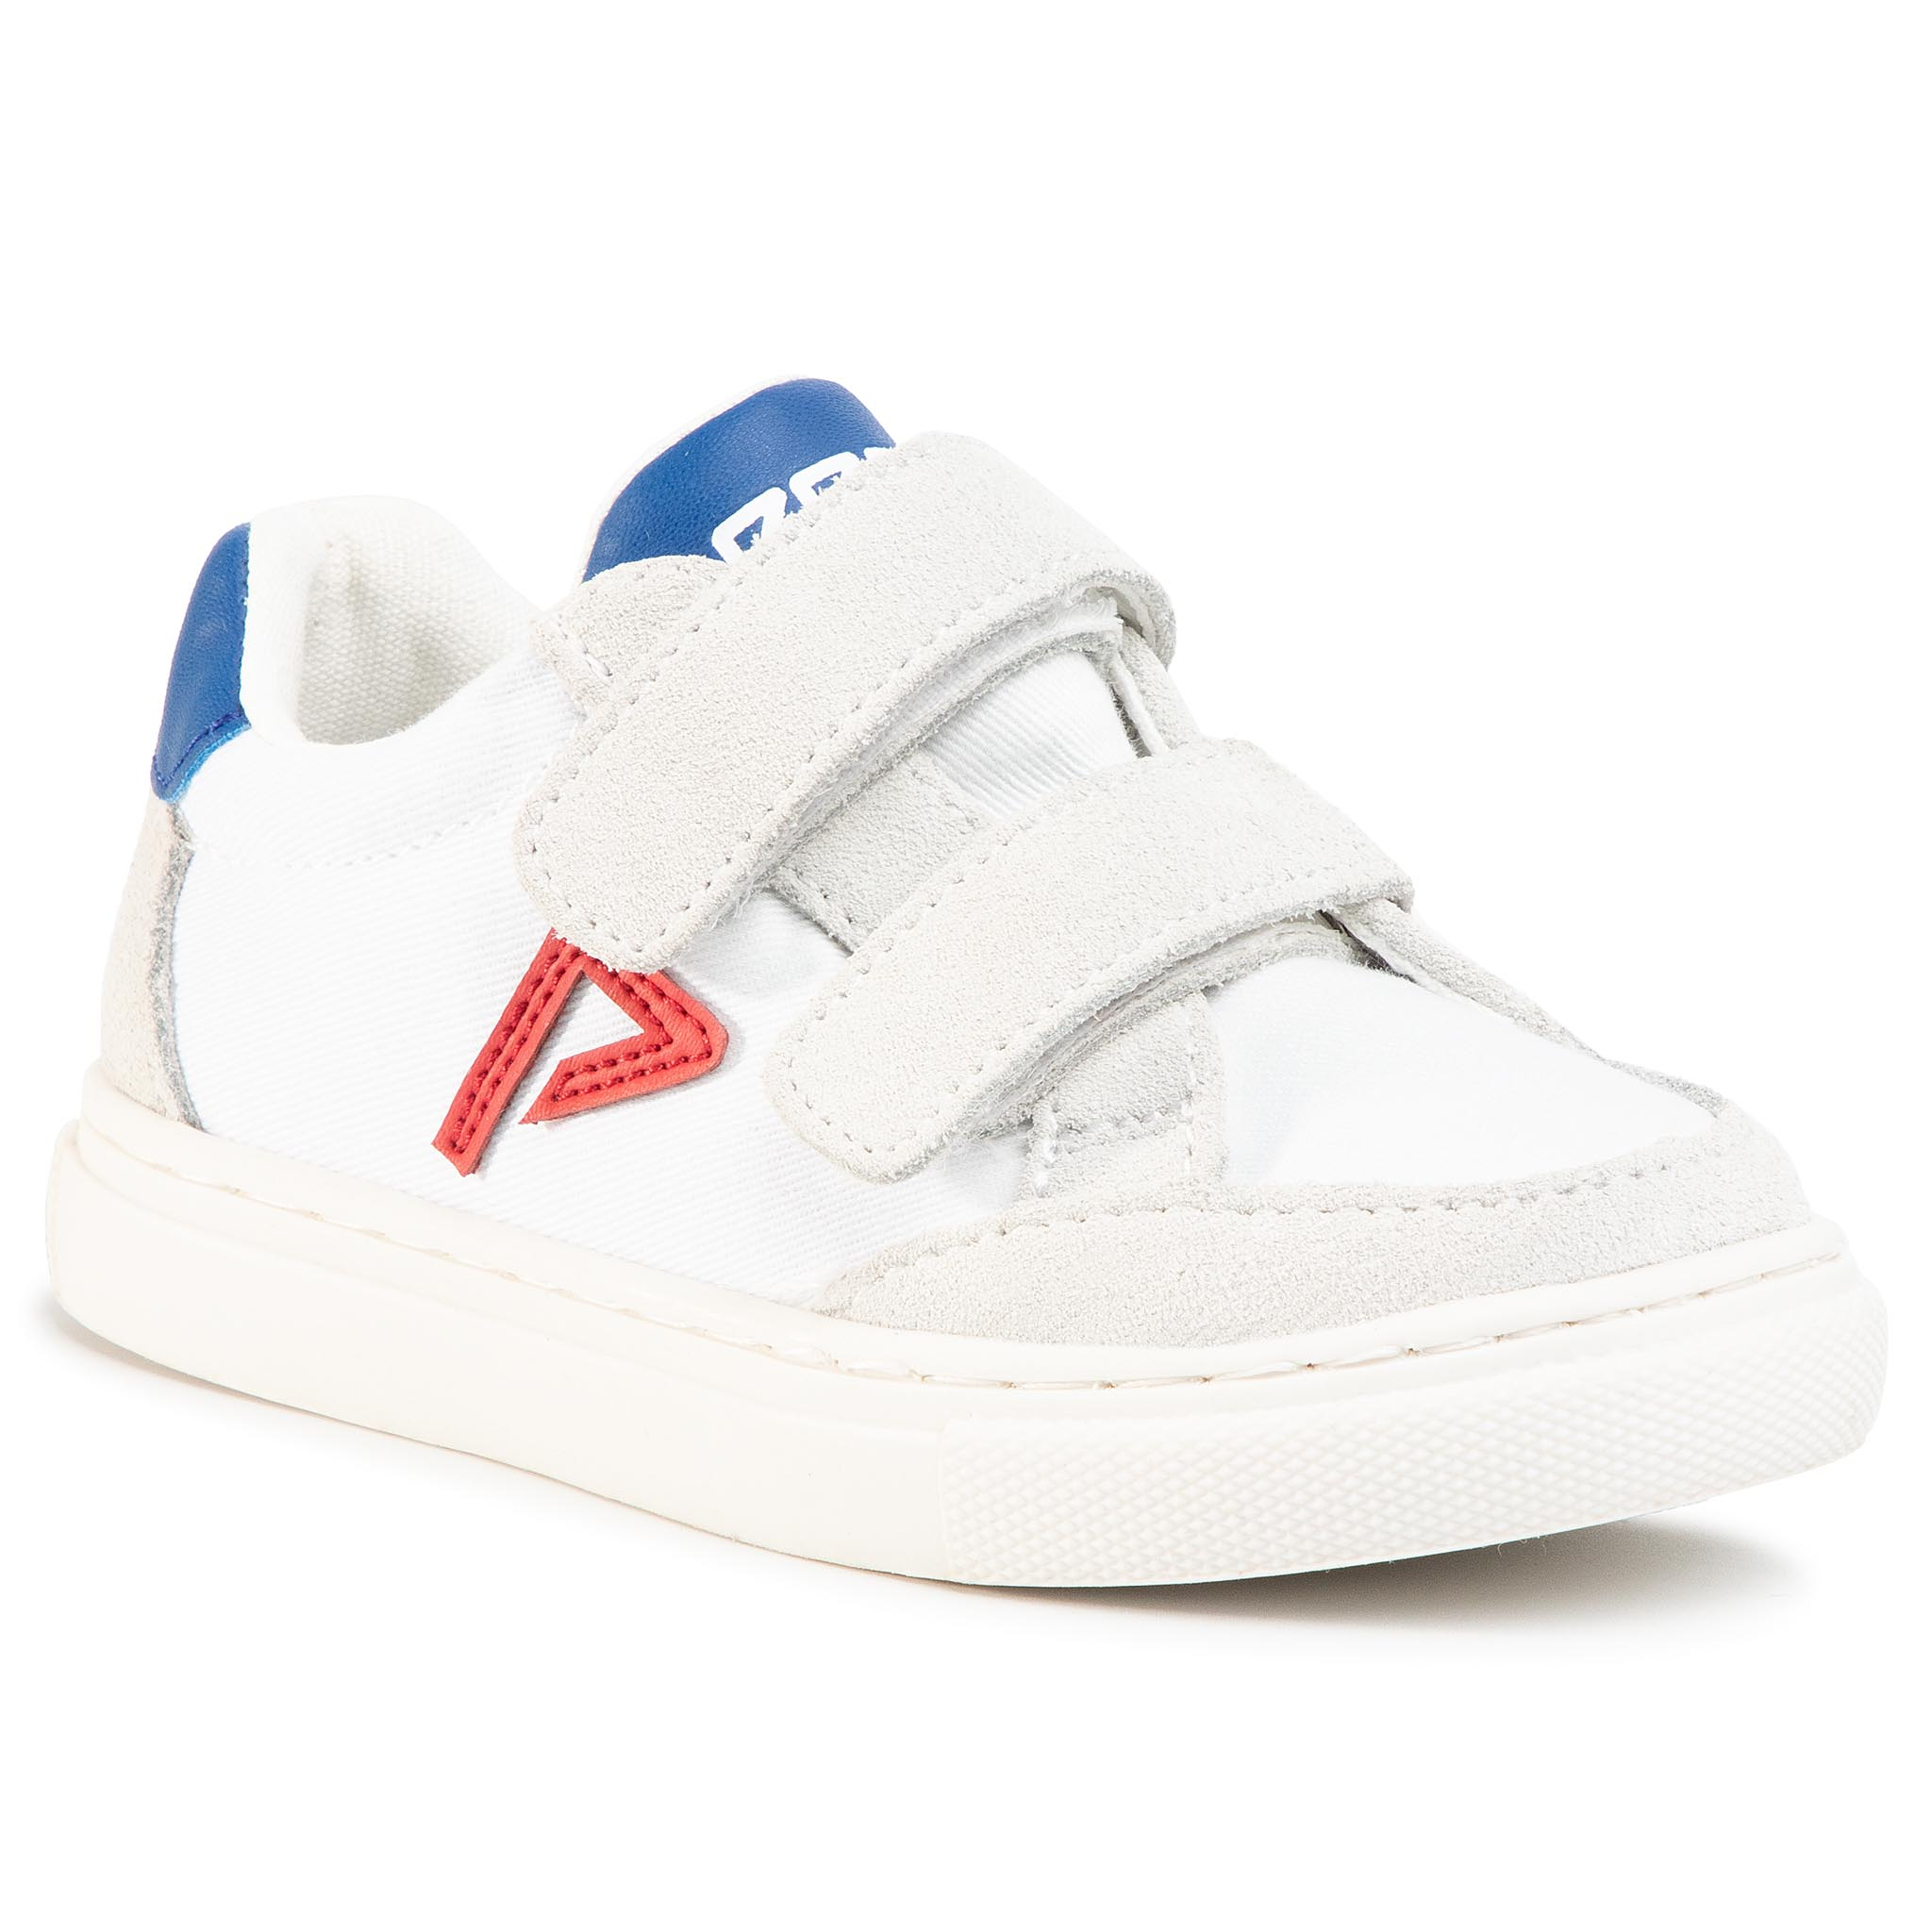 Sneakers PEPE JEANS - Adams Archive Kids PBS30436 White 800